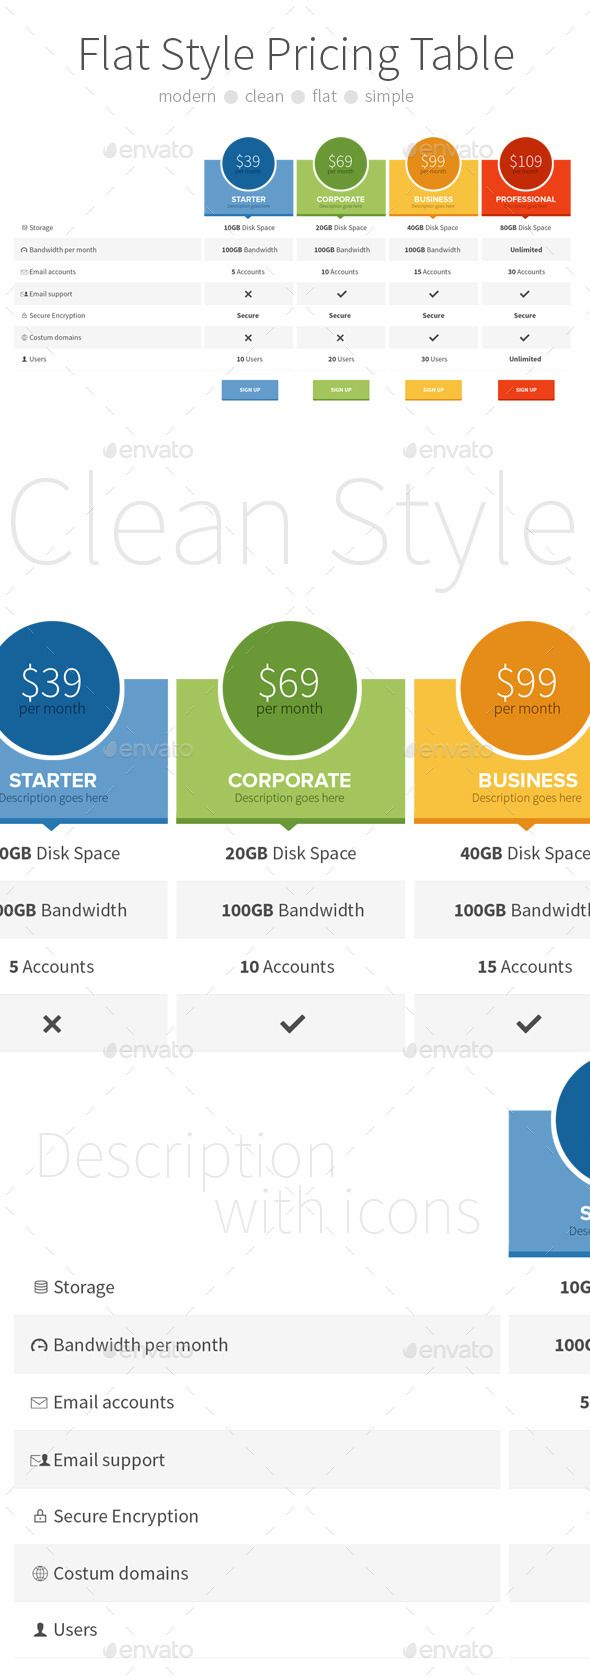 Flat Style Pricing Table Template PSD. Download Here: Http://graphicriver.